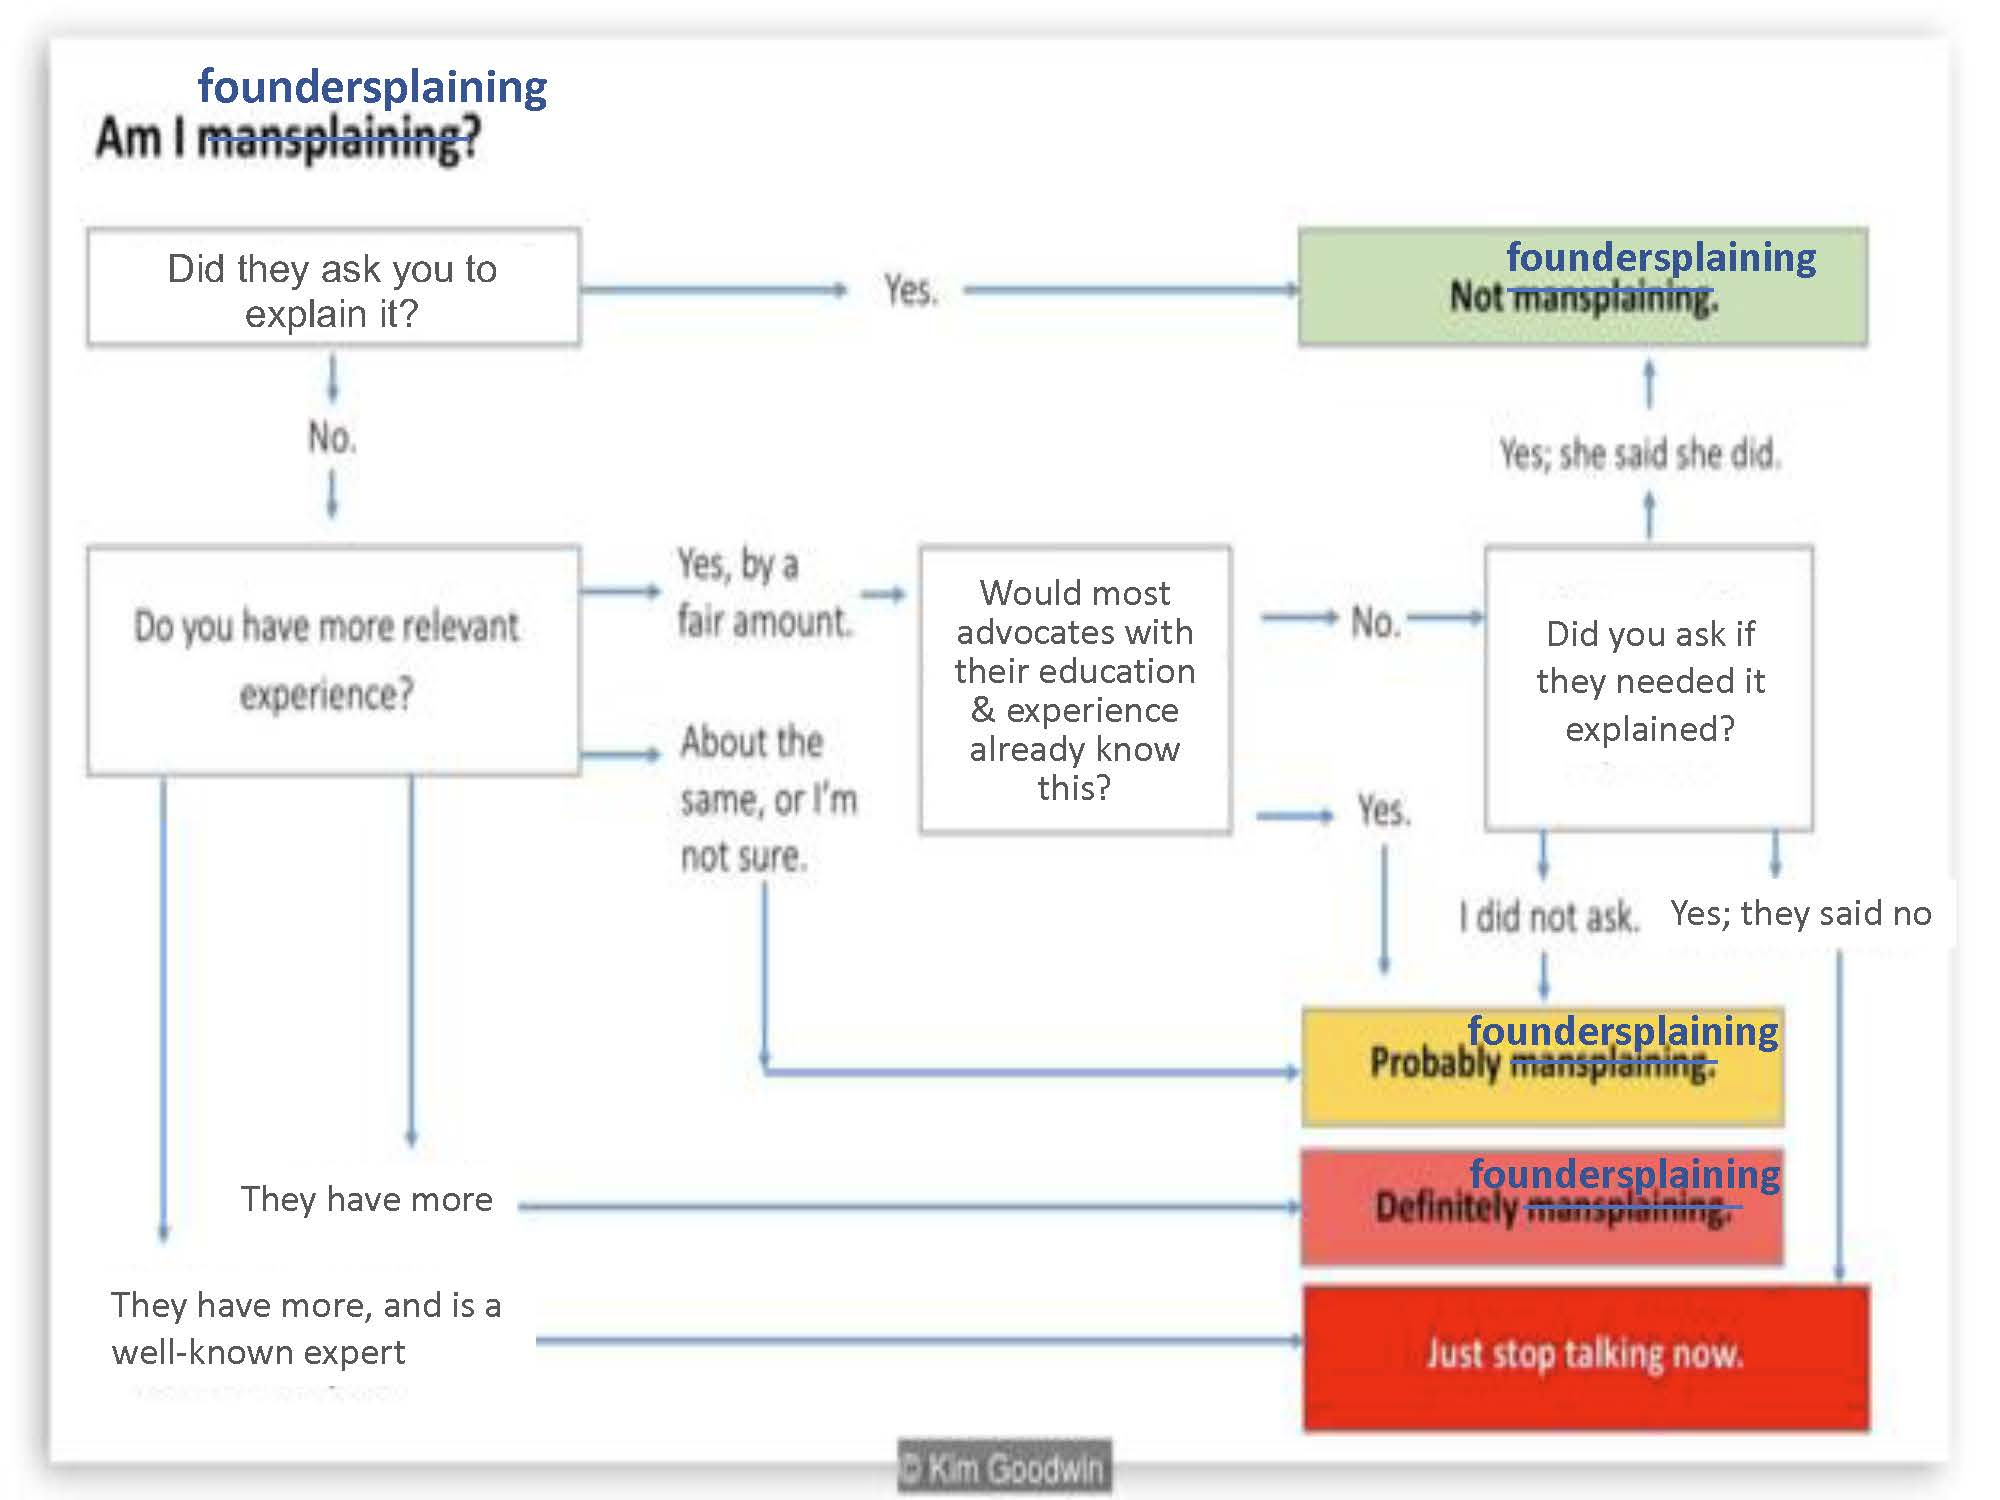 Adapted from Kim Goodwin's Flow Chart of Mansplaining